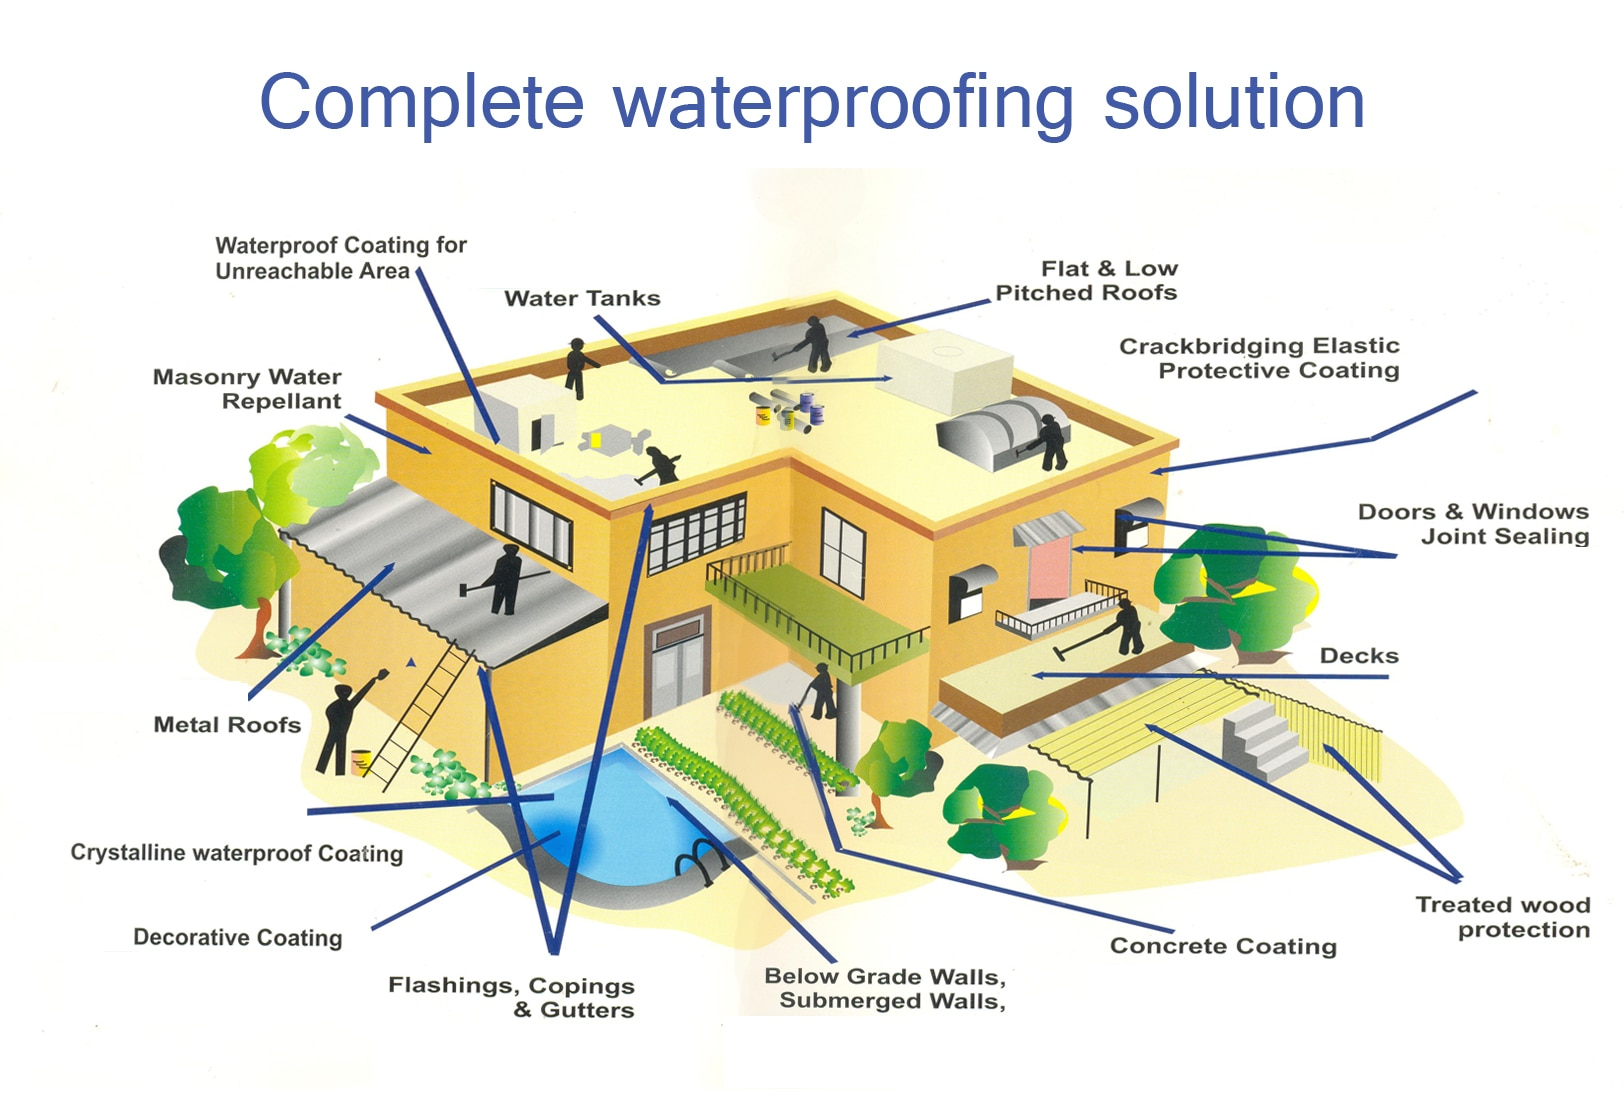 WE PROVIDE ALL KIND OF WATERPROOFING SOLUTION IN ALL AHMEDABAD & GUJARAT.